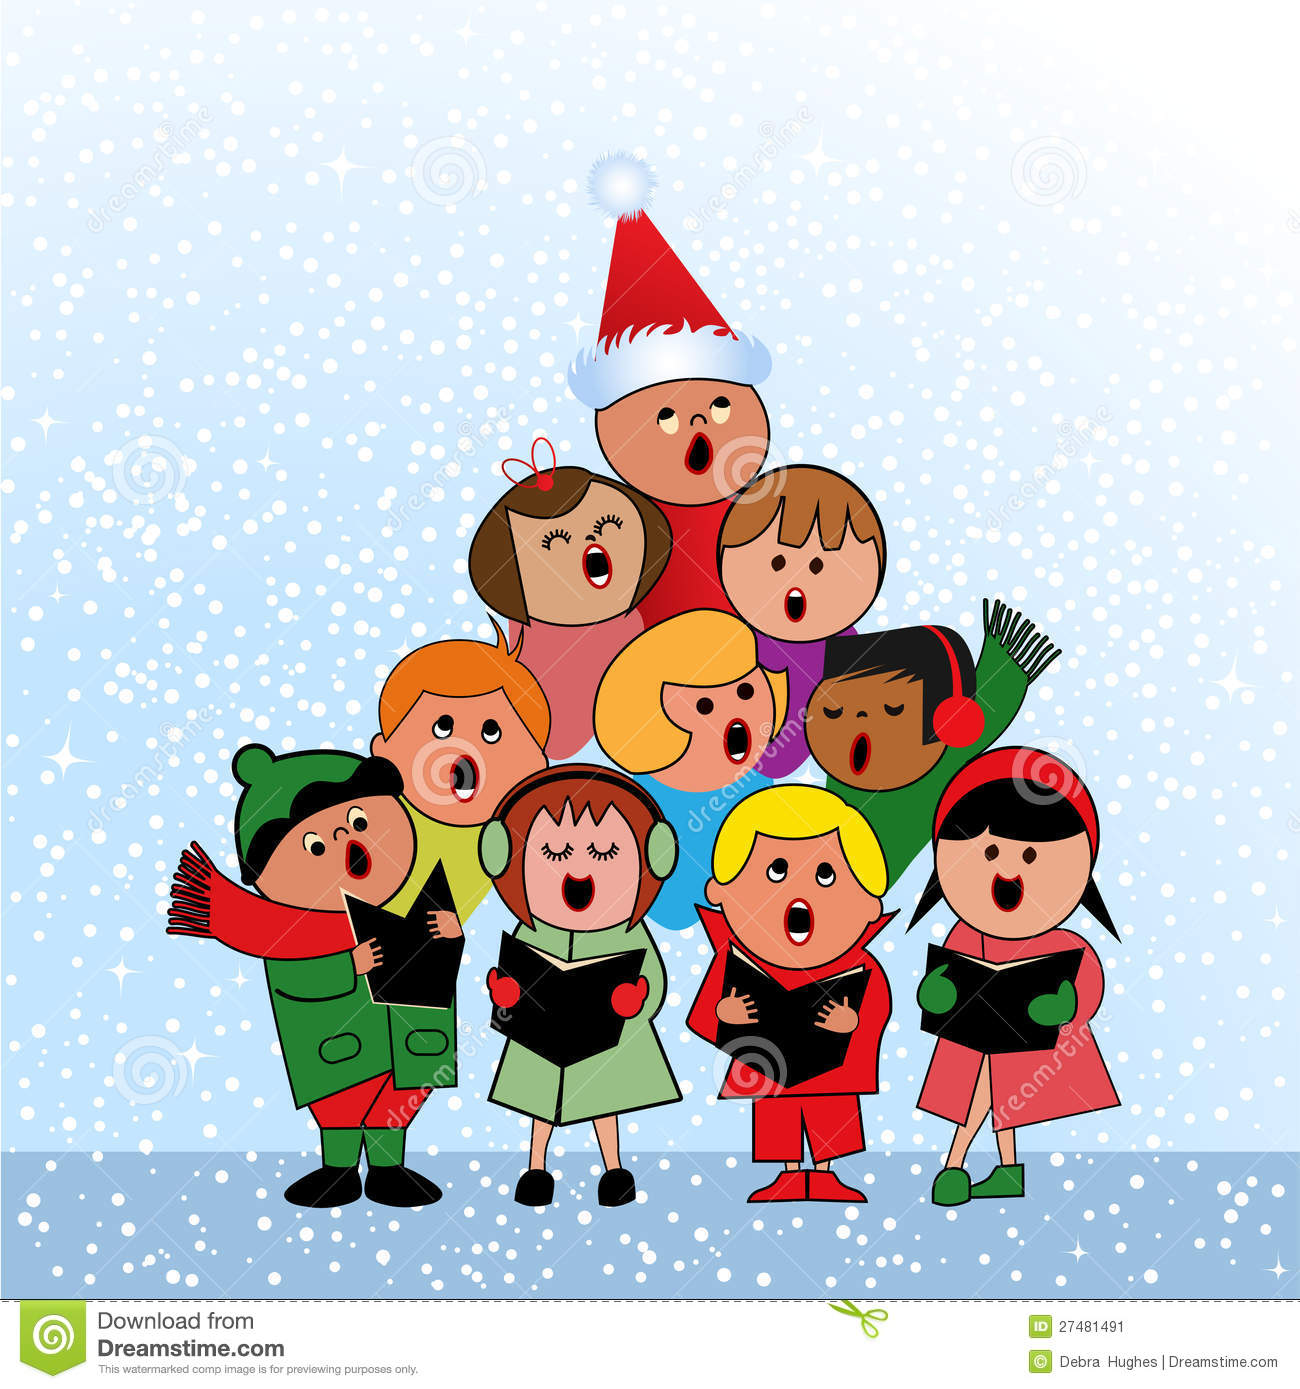 Joy And Noel Holiday Caroler: Carolers In Shape Of Christmas Tree Stock Vector